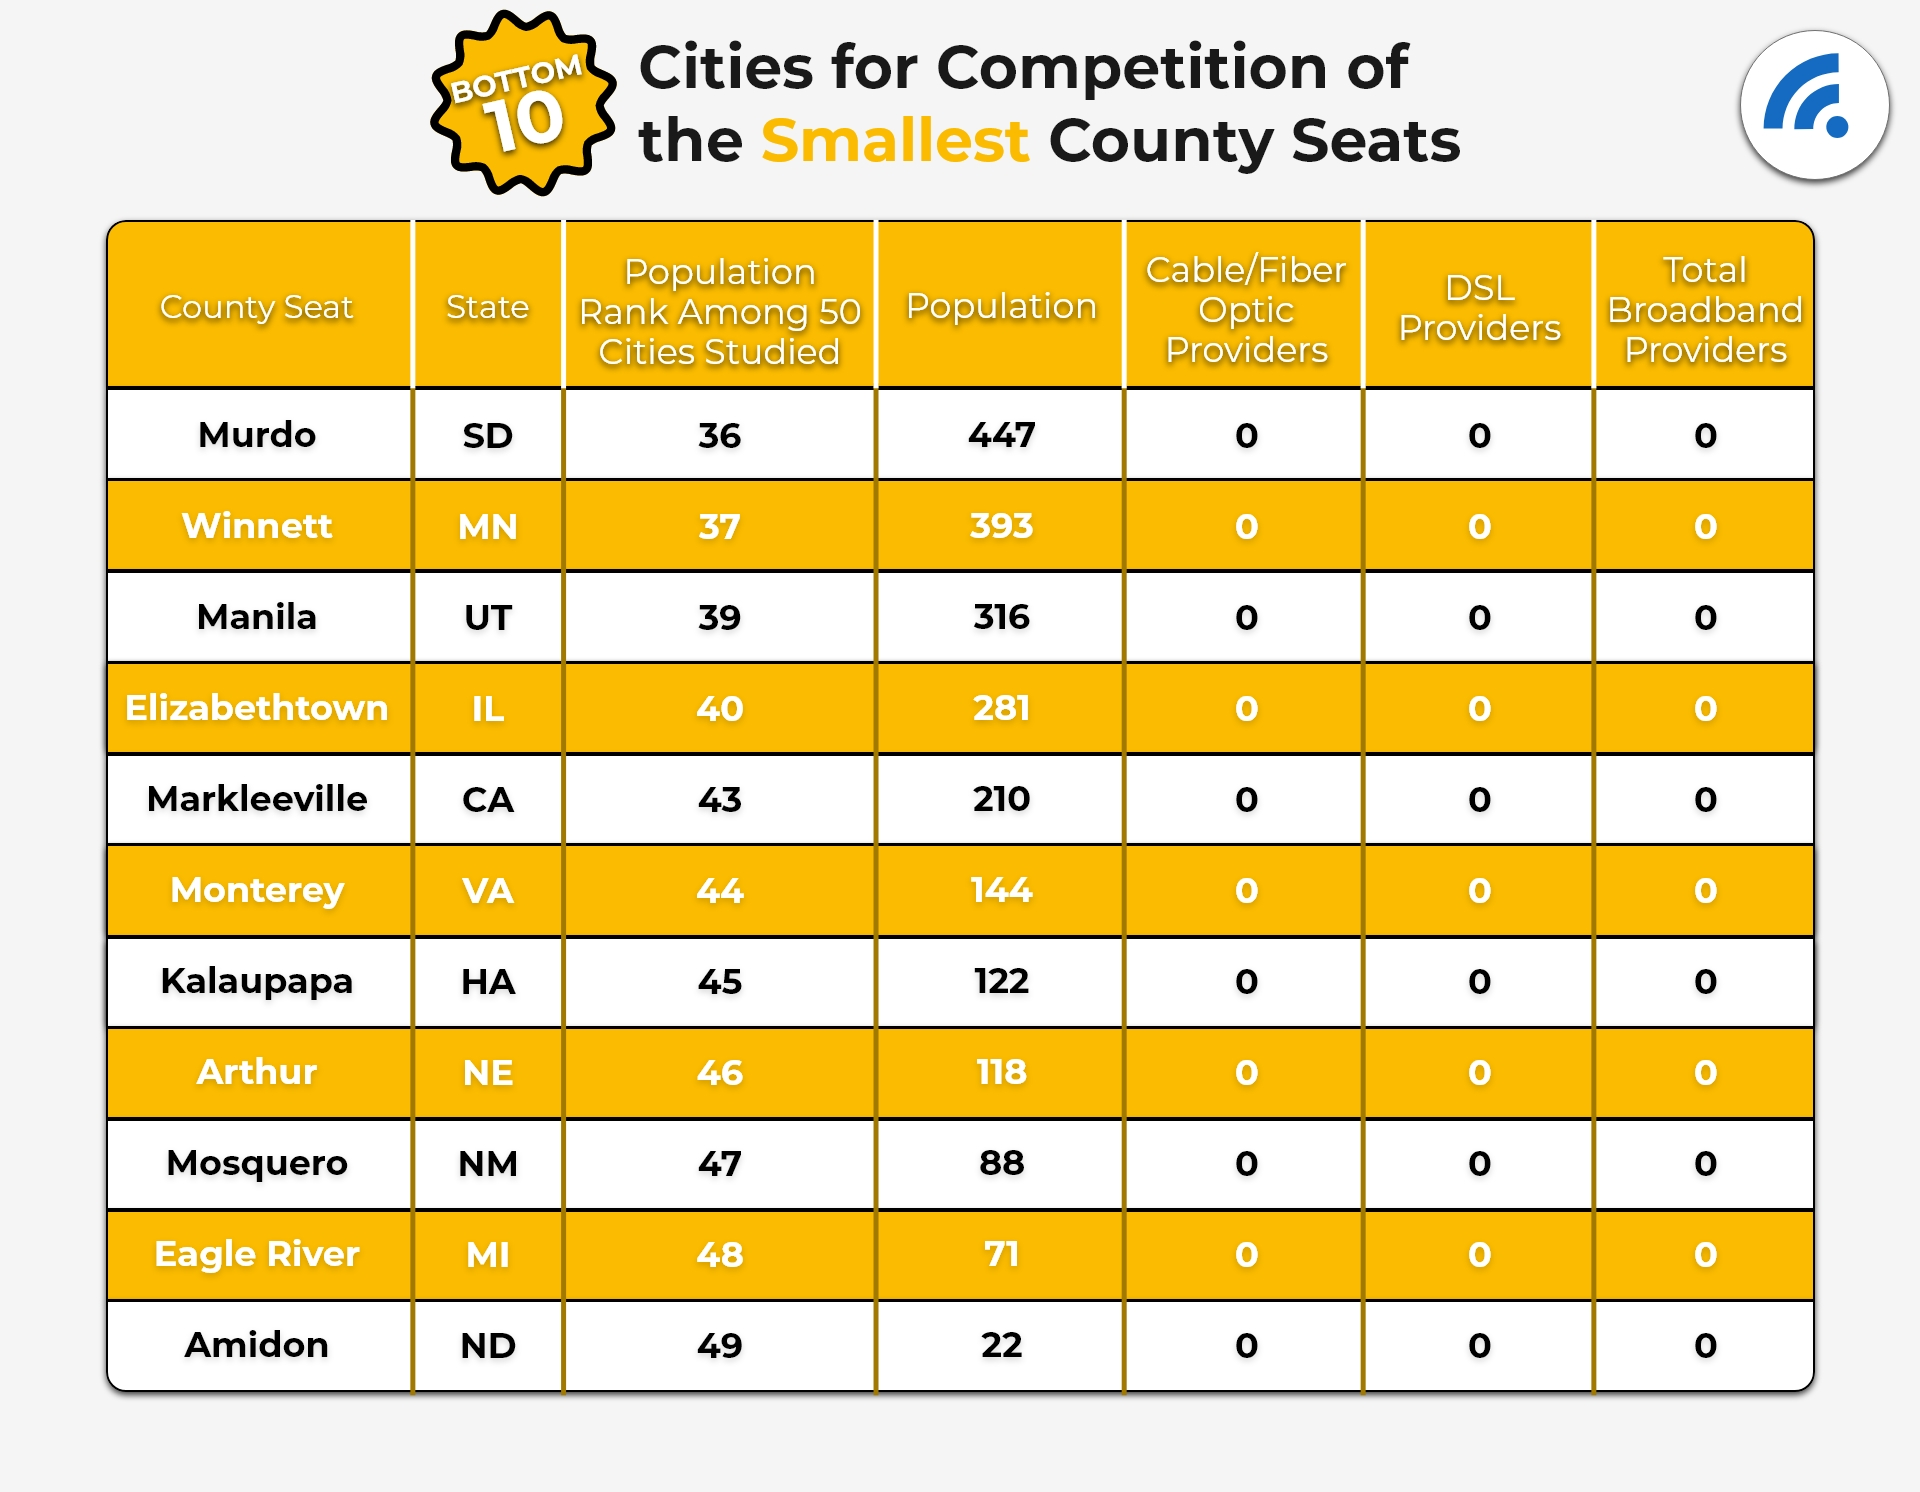 Bottom 10 Cities for Competition of the Smallest County Seats